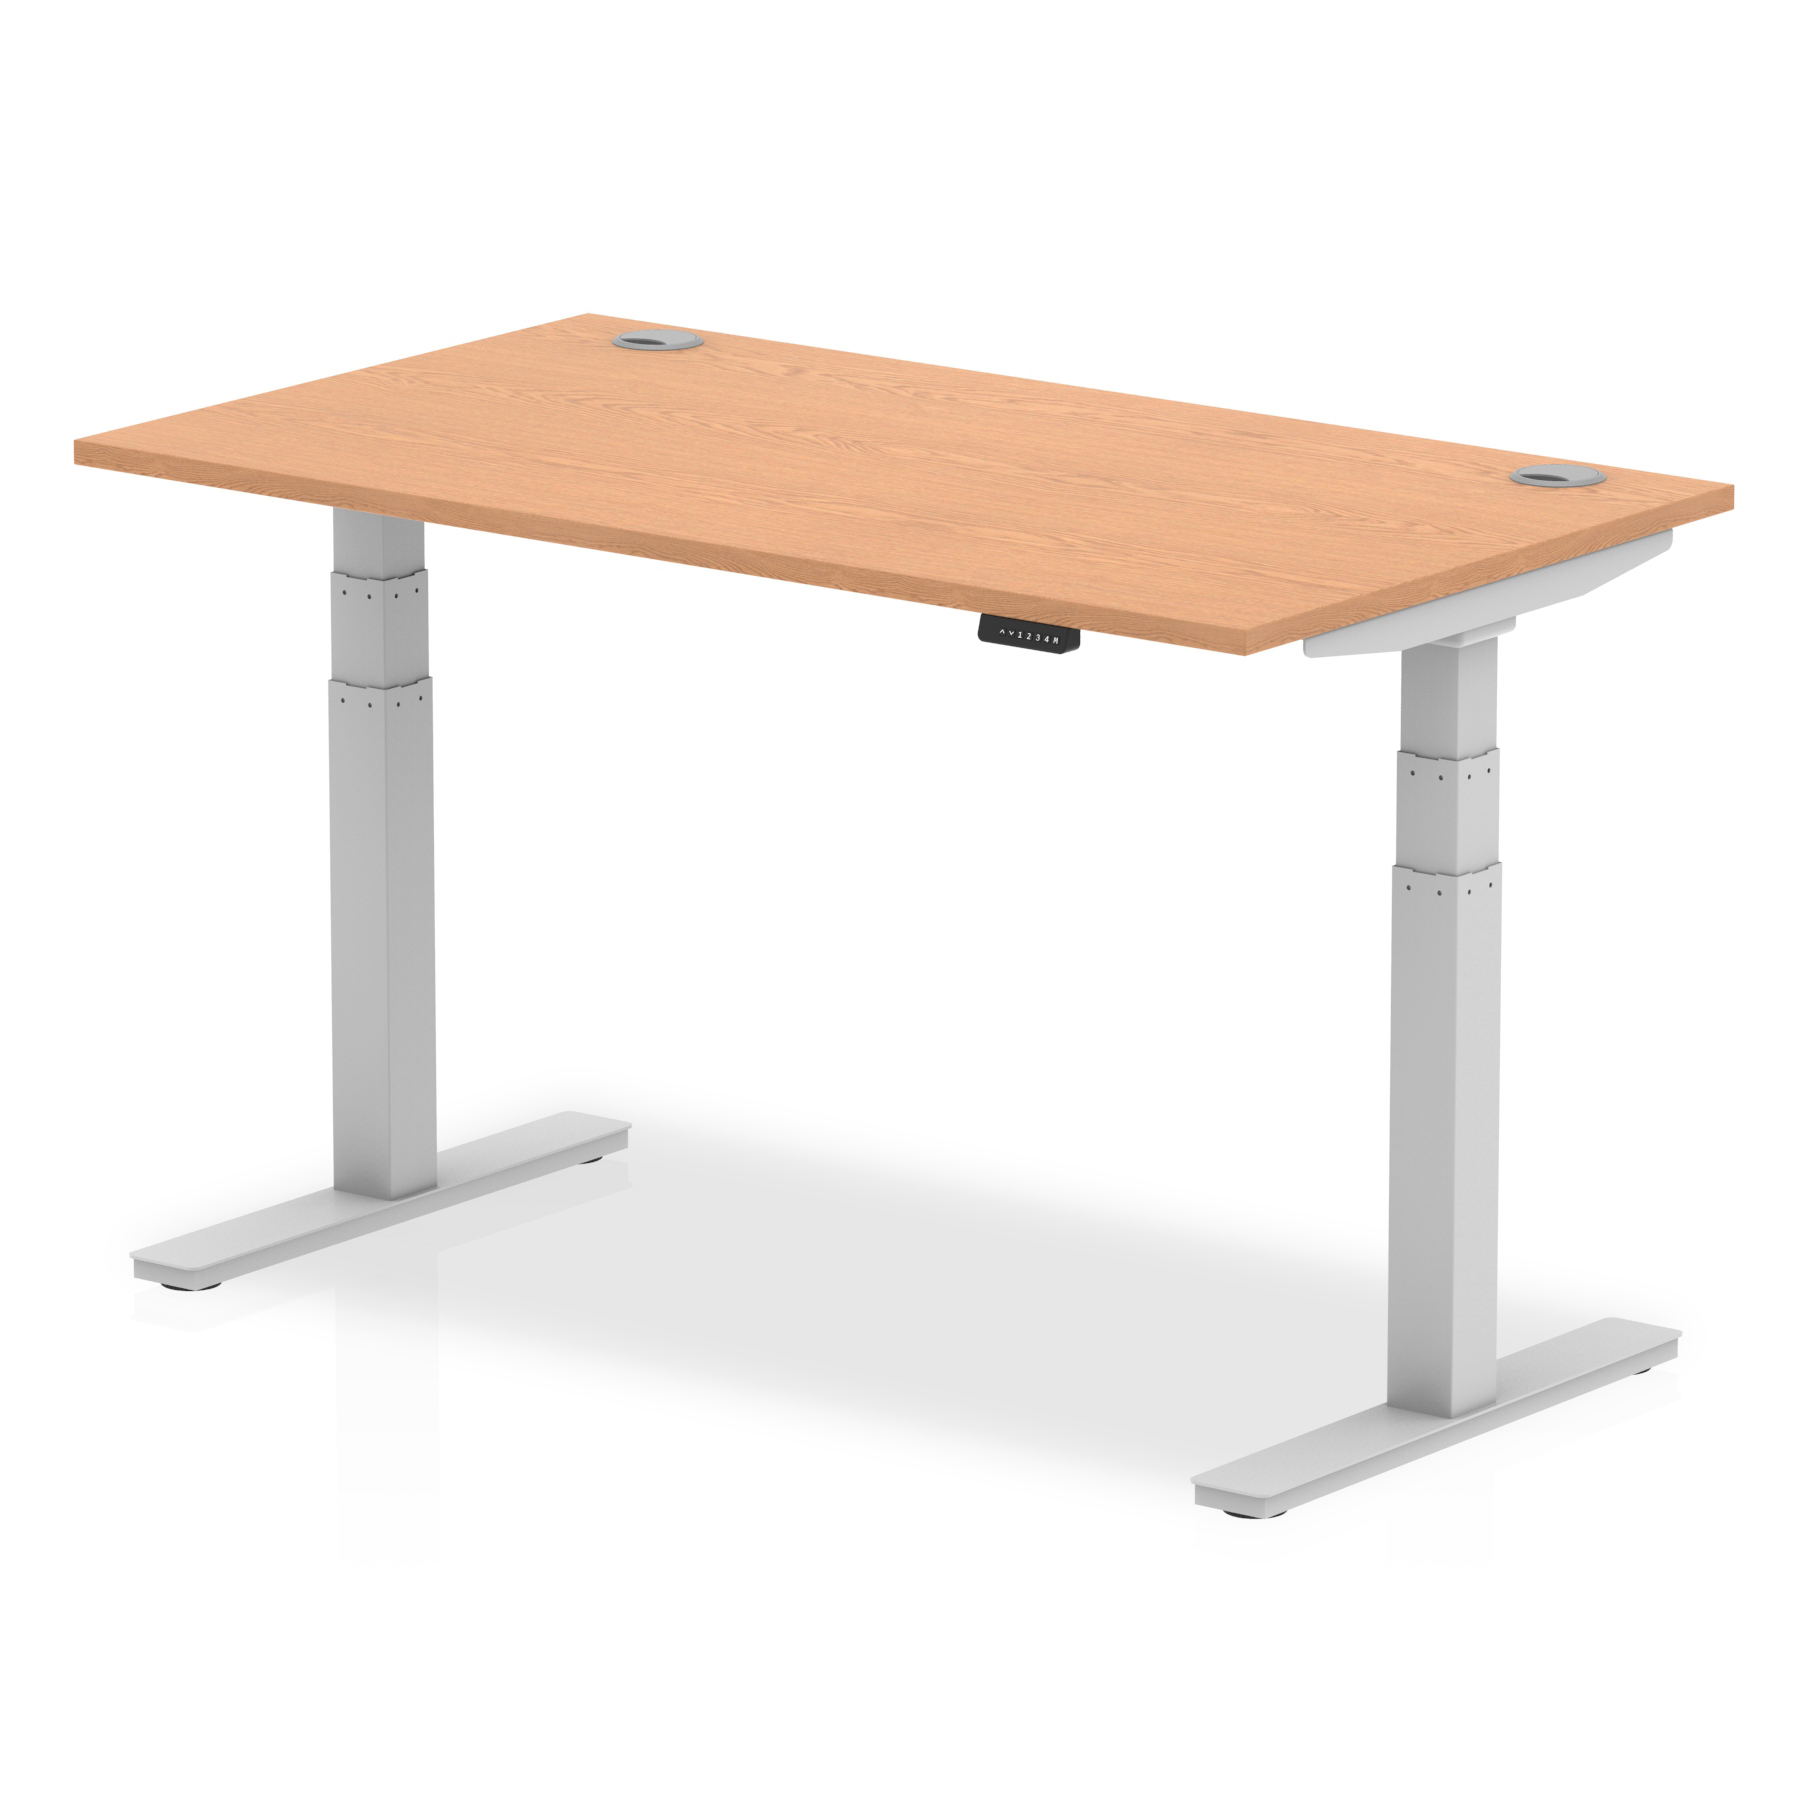 Trexus Sit Stand Desk With Cable Ports Silver Legs 1400x800mm Oak Ref HA01098